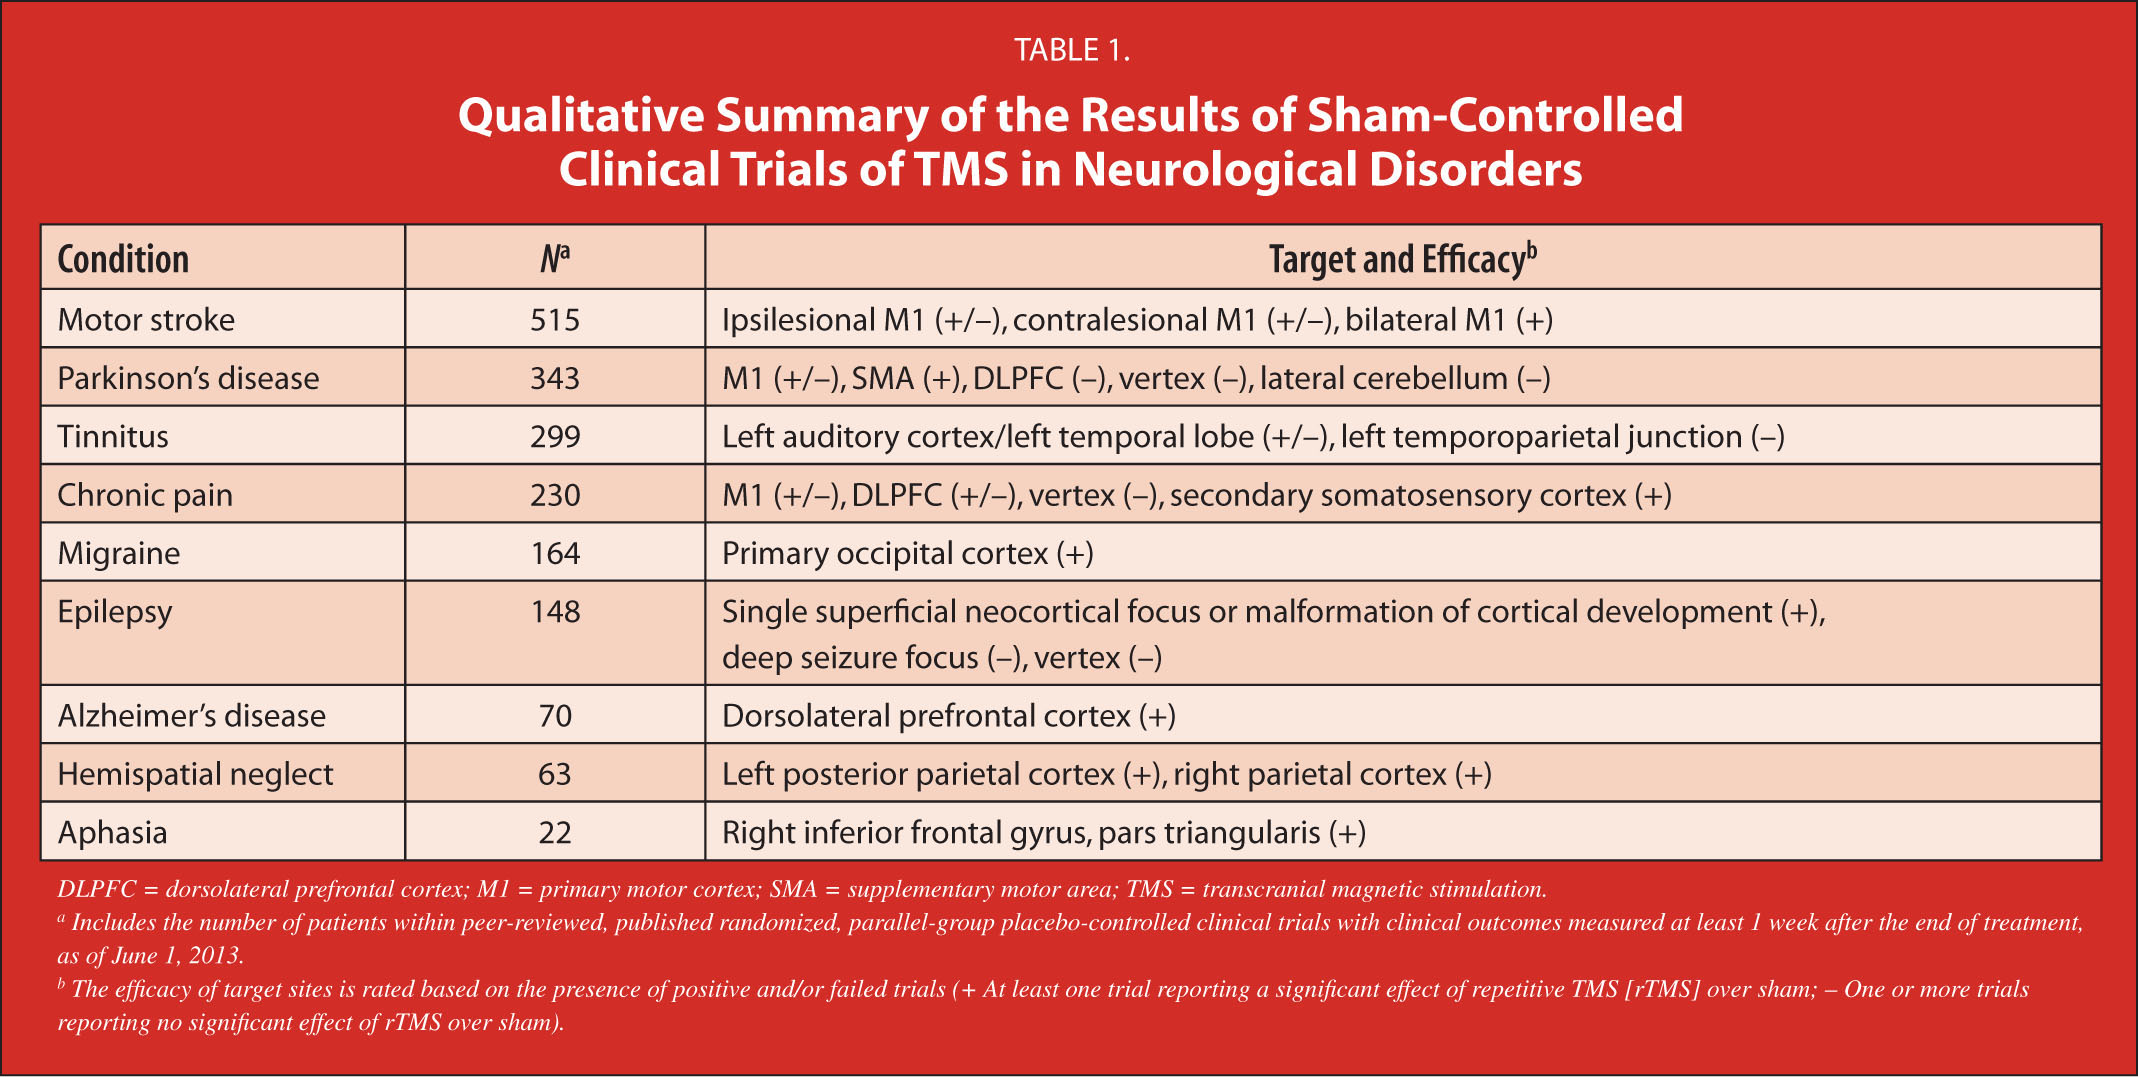 Qualitative Summary of the Results of Sham-Controlled Clinical Trials of TMS in Neurological Disorders